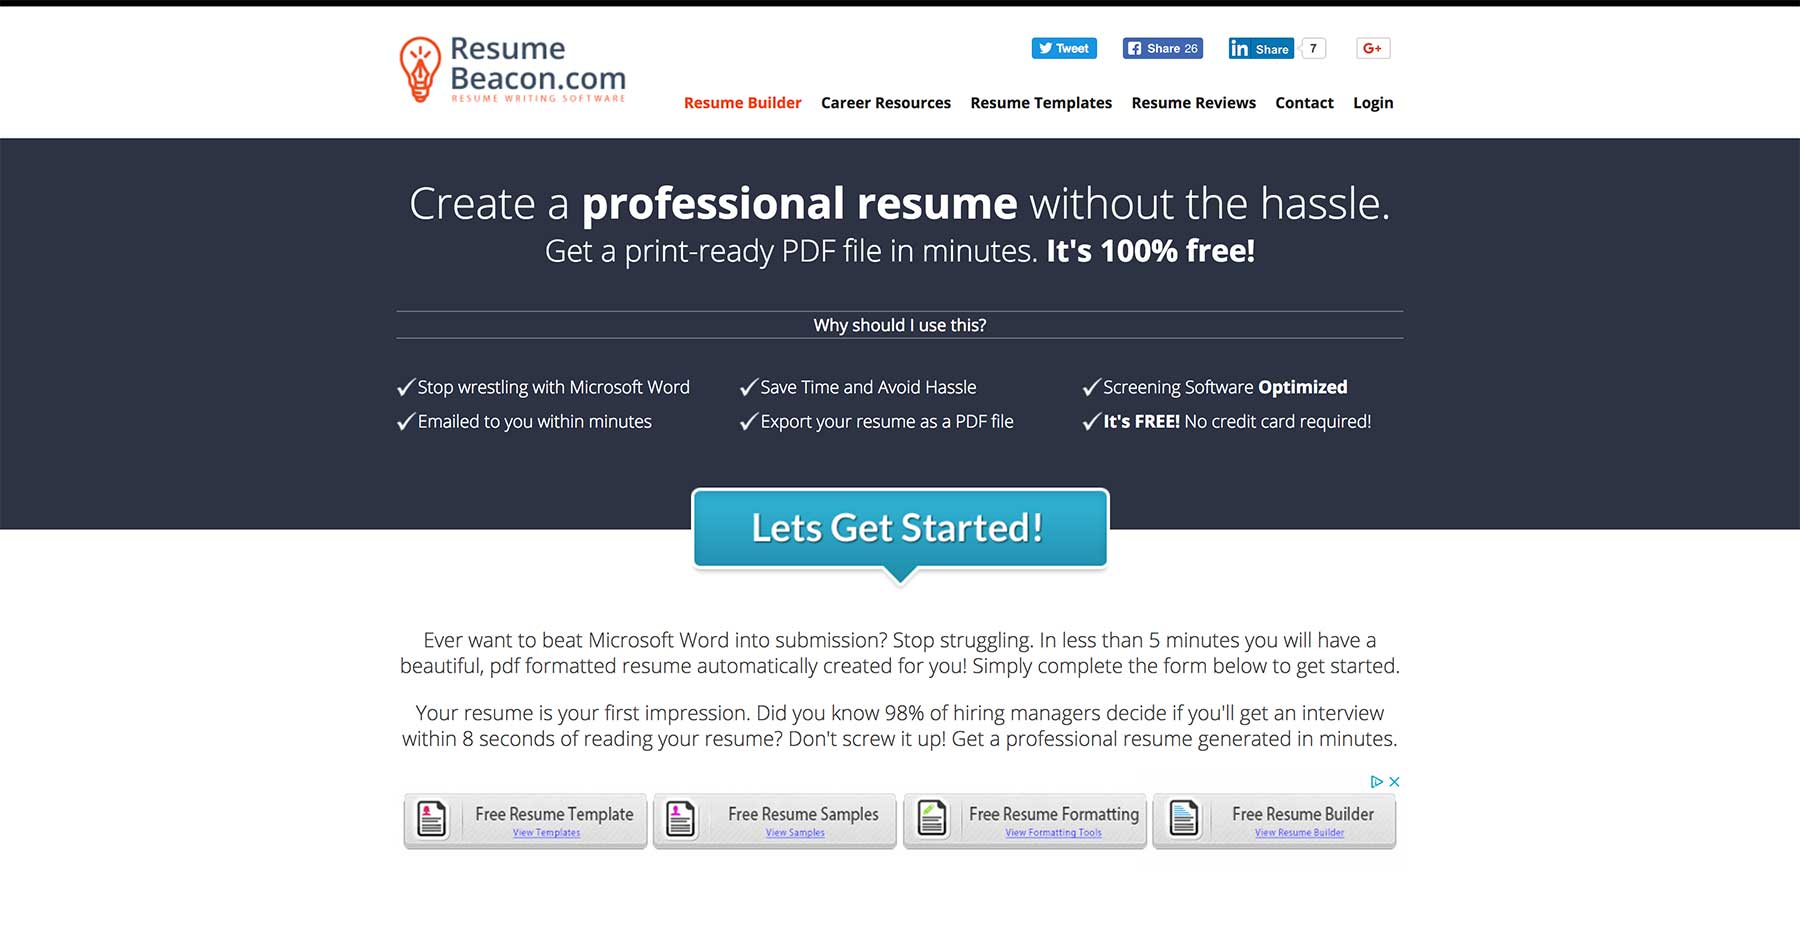 How To Create And Market A Resume-Building Service - Indie Hackers